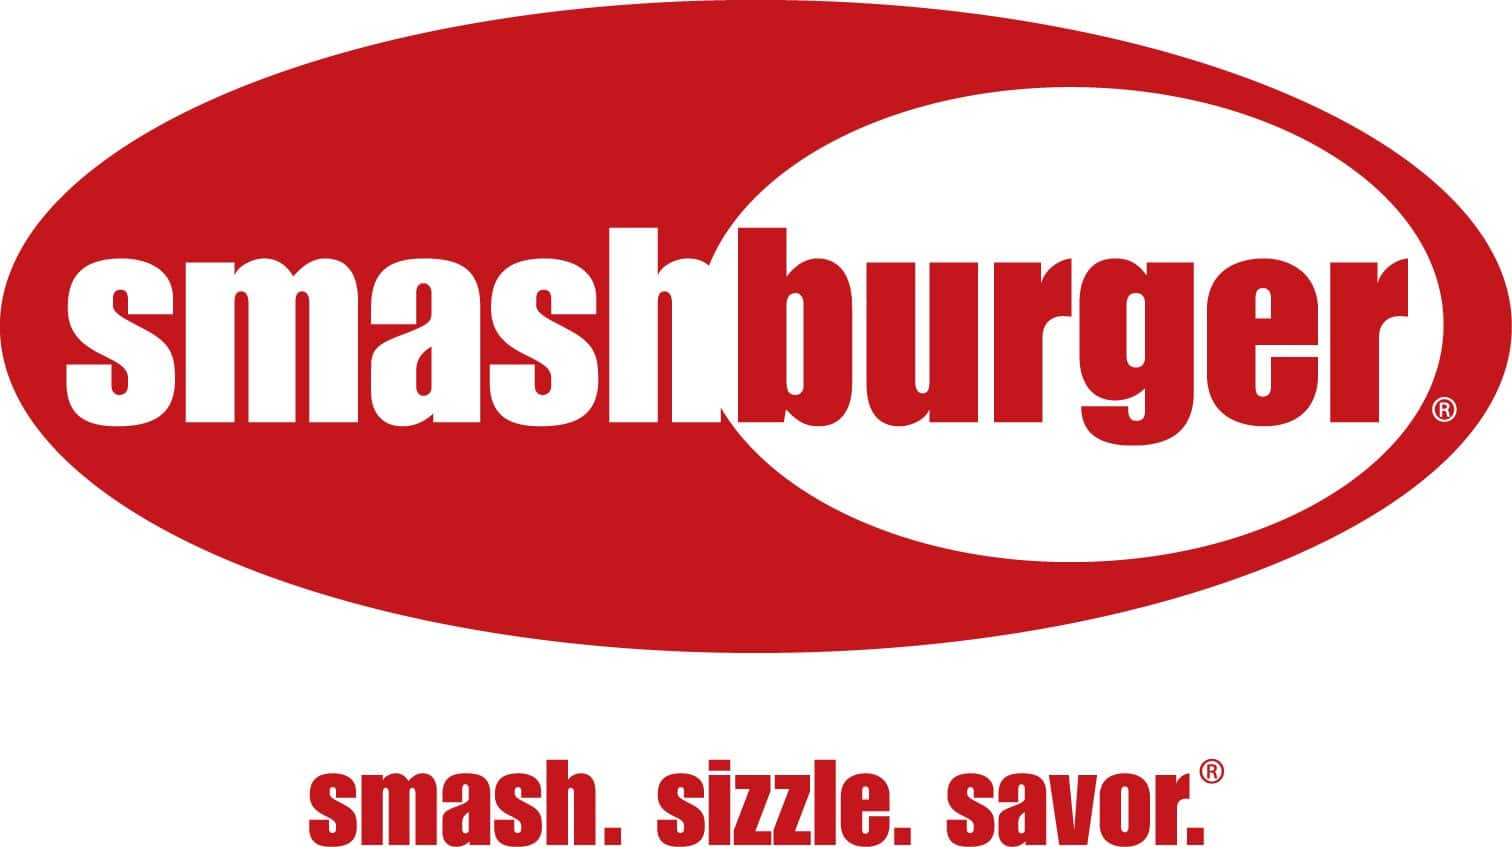 Smashburger SmashClub Members - $1 SmashBurger Entrees for 54 Days for $54 - Available for Purchase Starting 10/31/17, Valid 11/15/17 to 01/09/18